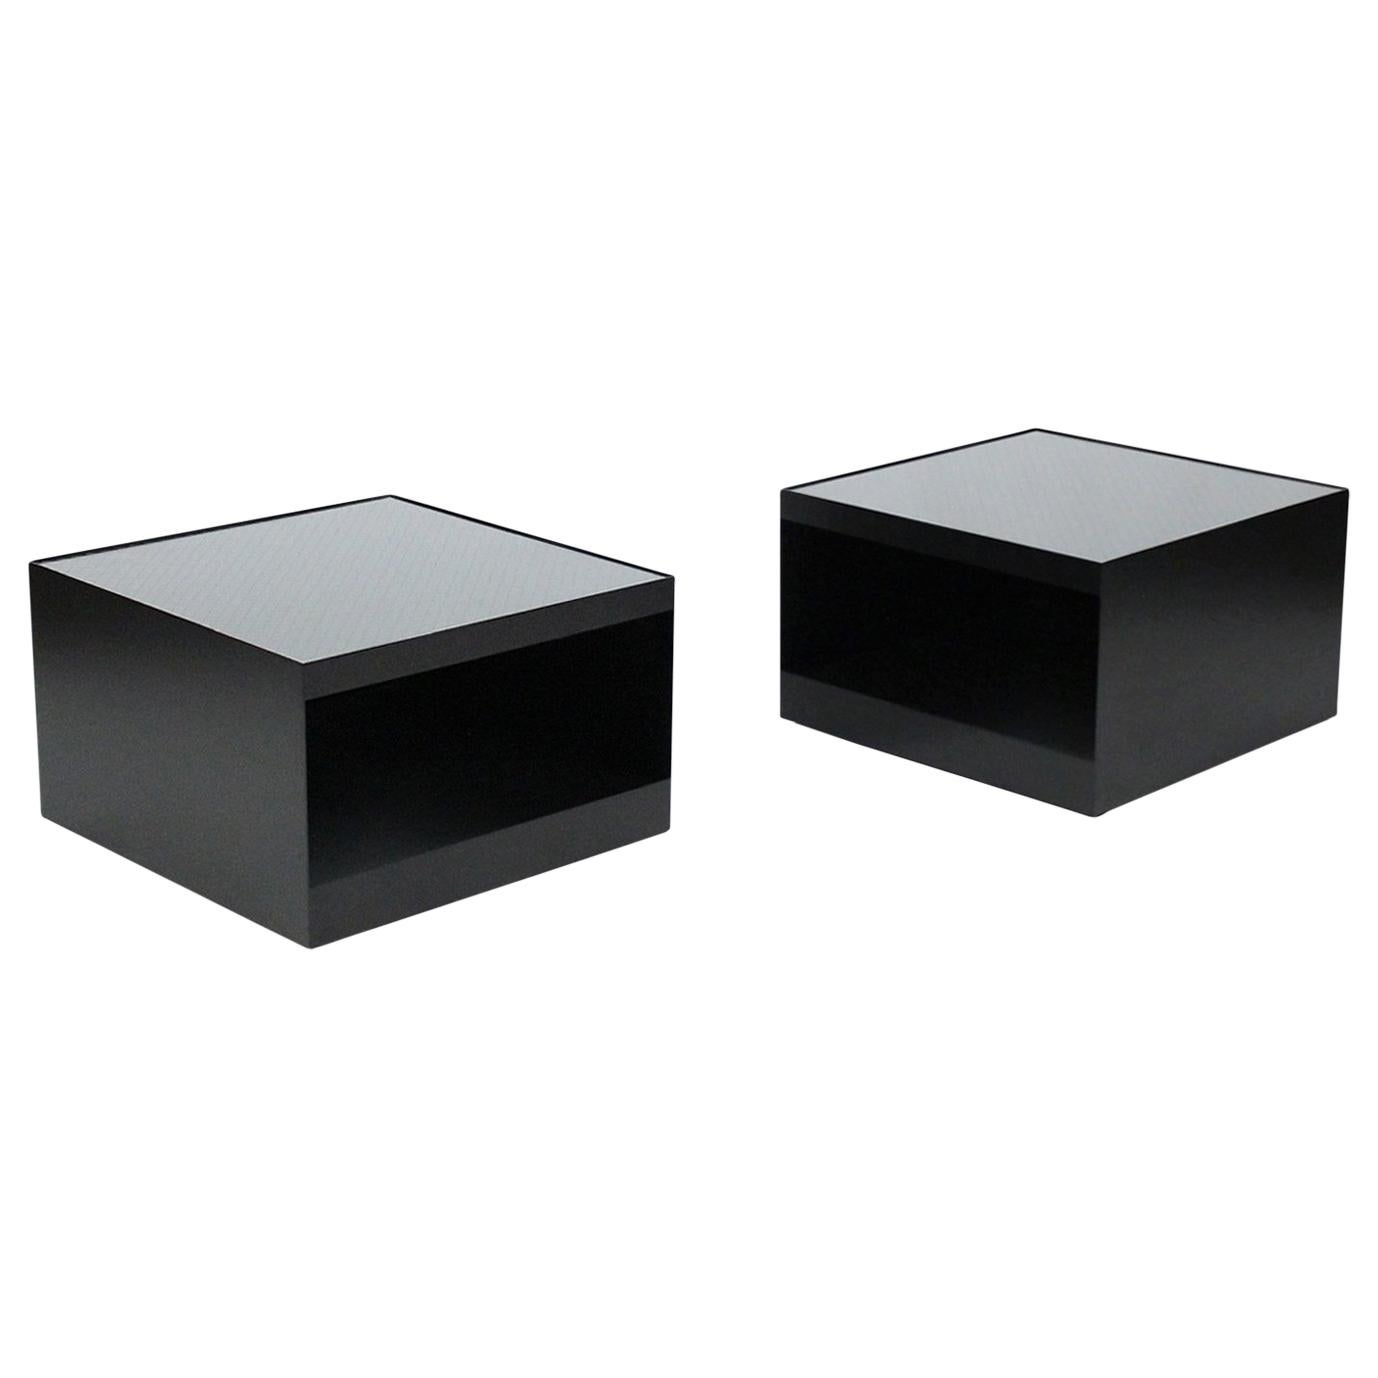 Pair of Tables by Joe D'Urso for Knoll